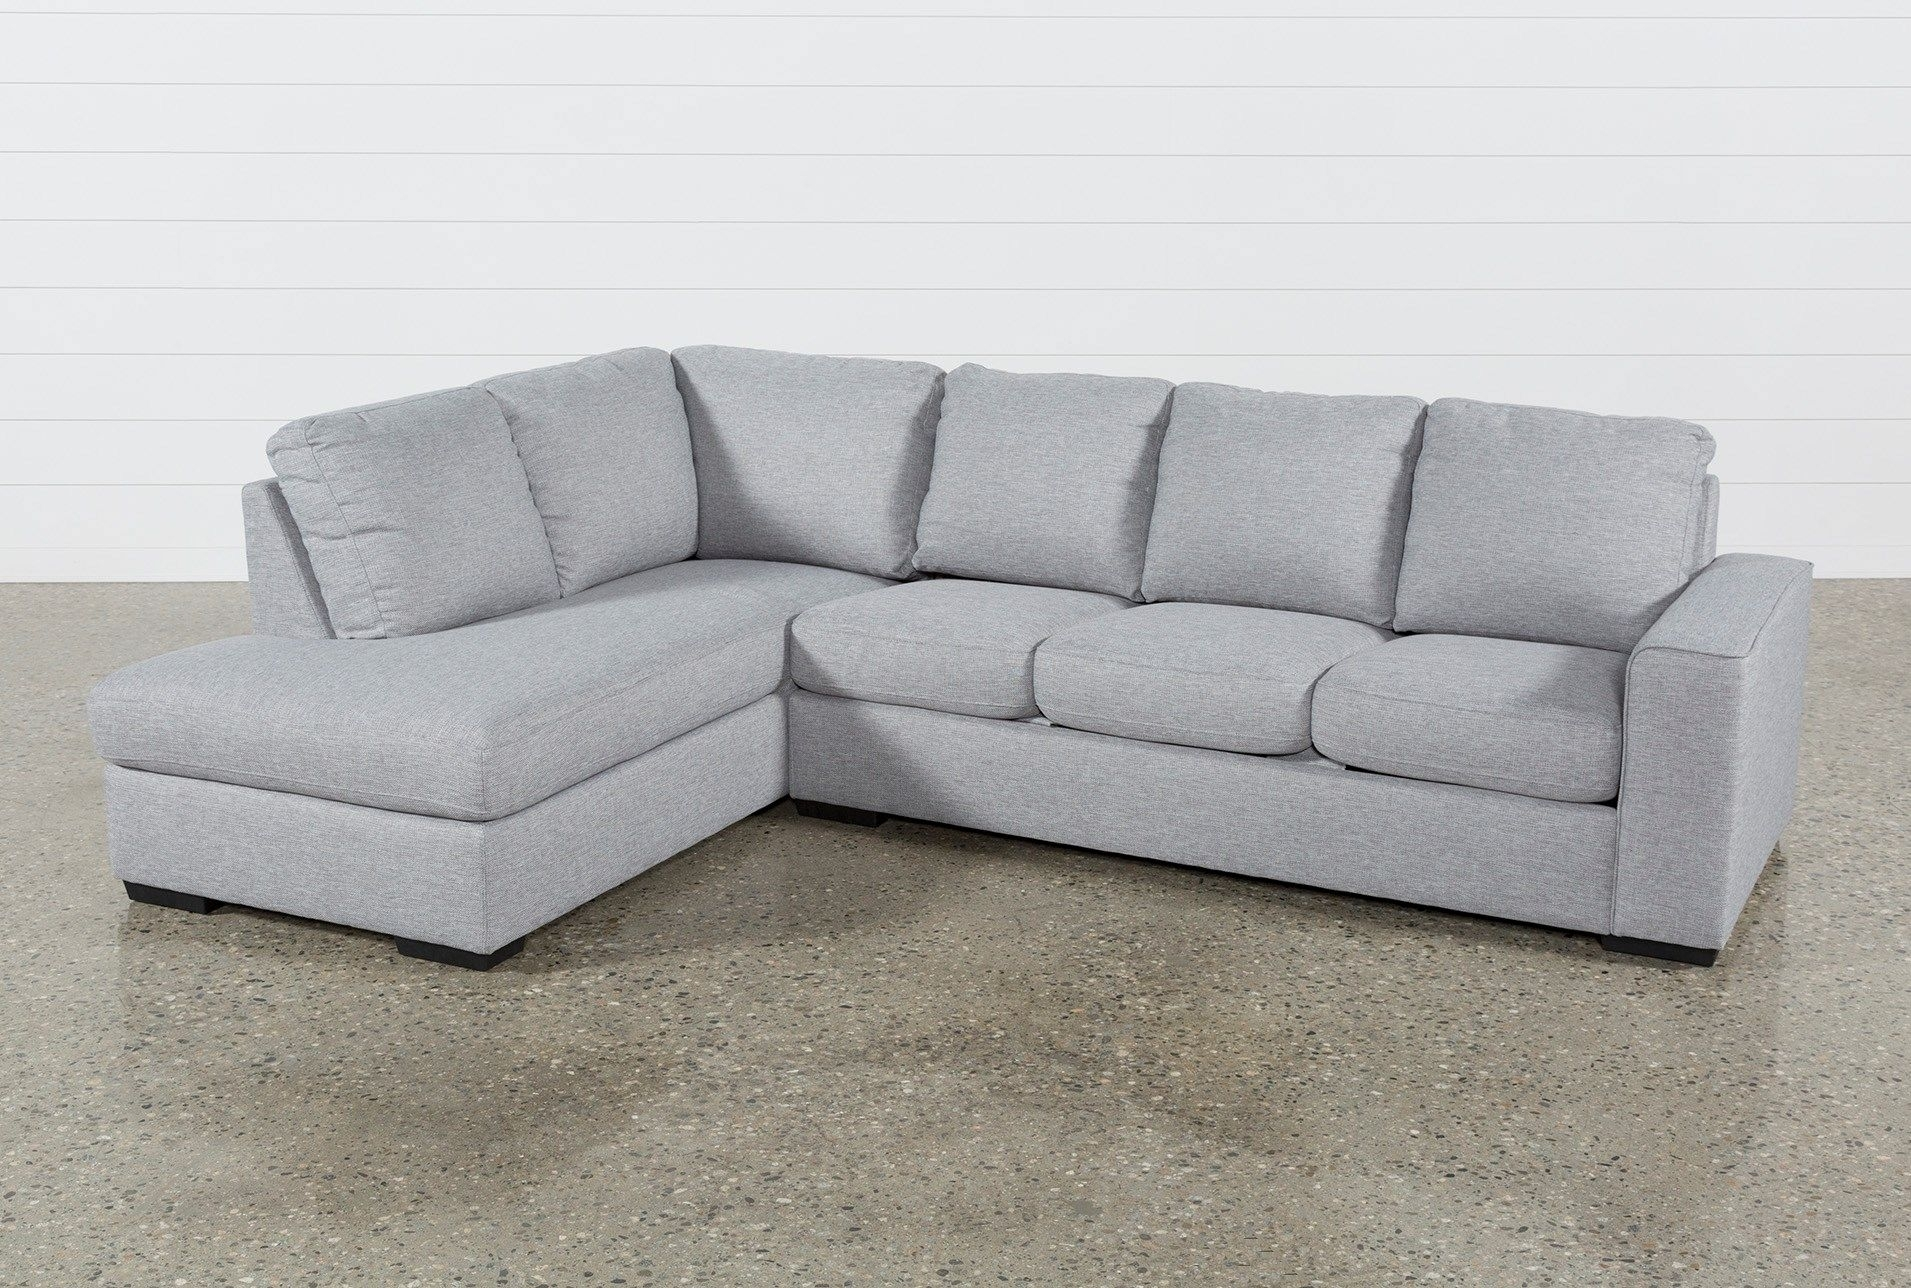 Lucy Grey 2 Piece Sectional W/laf Chaise | Tx House | Pinterest inside Lucy Dark Grey 2 Piece Sectionals With Laf Chaise (Image 23 of 30)